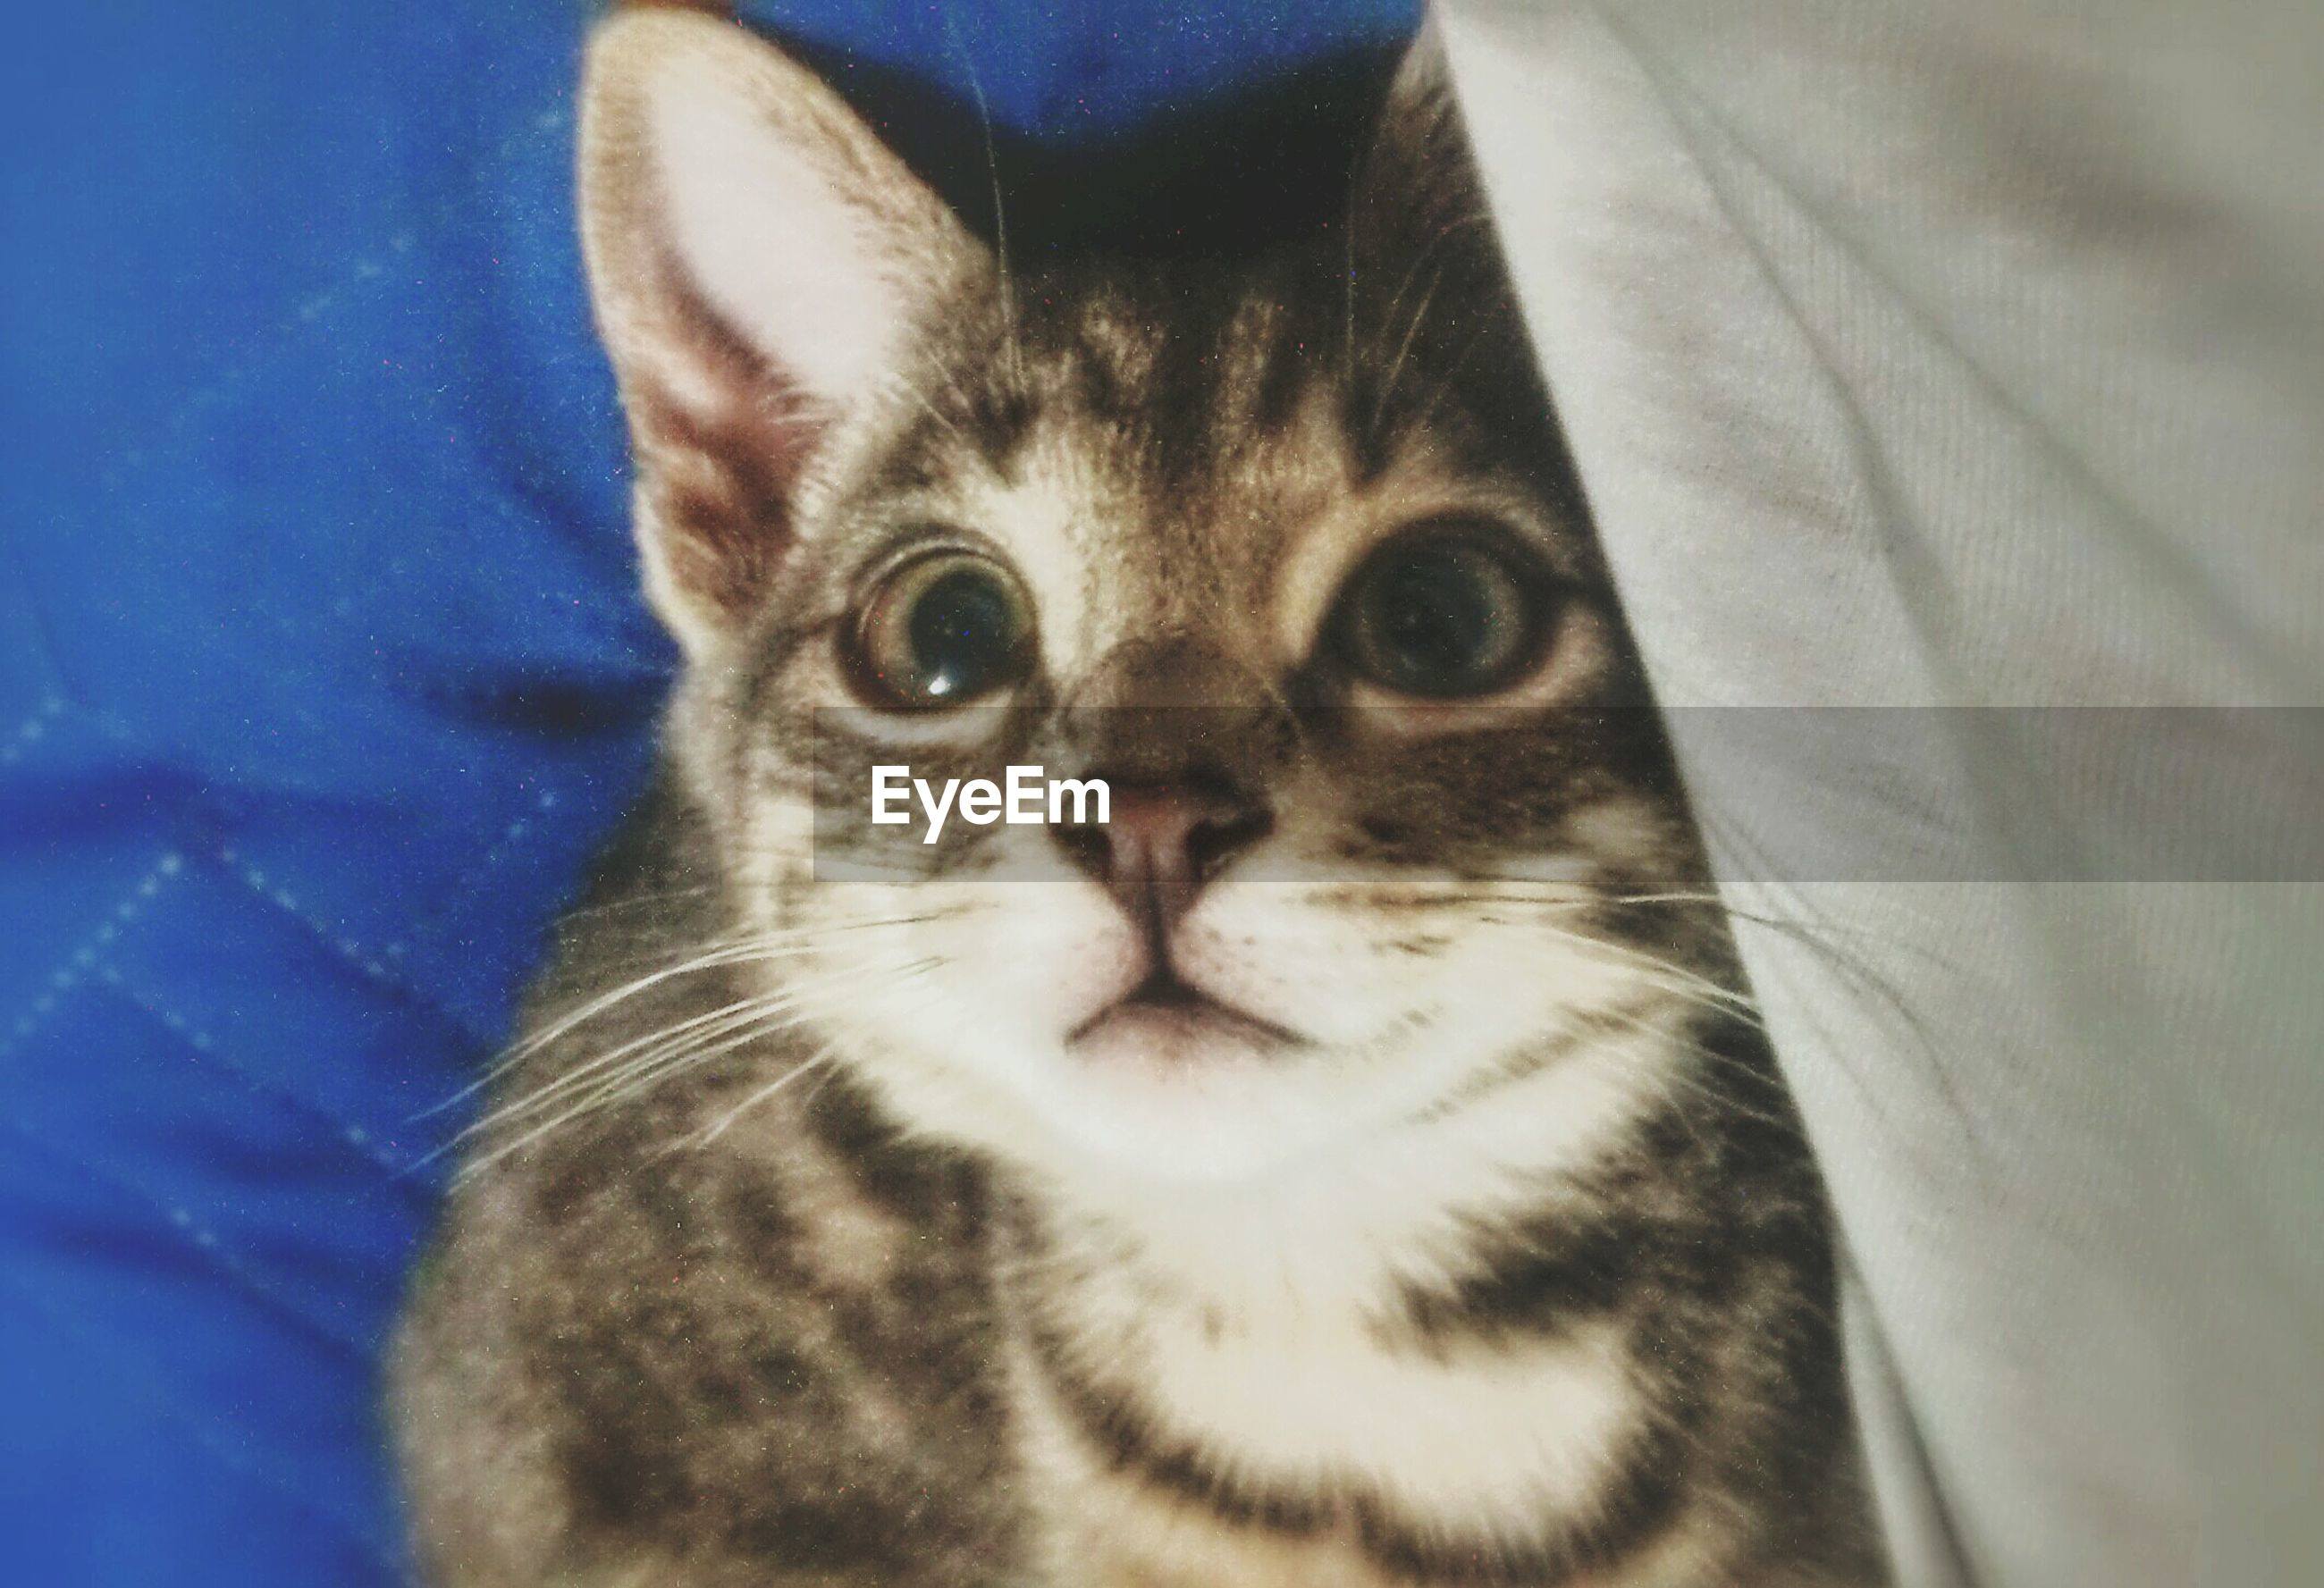 pets, animal themes, one animal, domestic animals, domestic cat, cat, indoors, mammal, feline, whisker, portrait, looking at camera, close-up, animal head, animal eye, relaxation, animal body part, staring, alertness, zoology